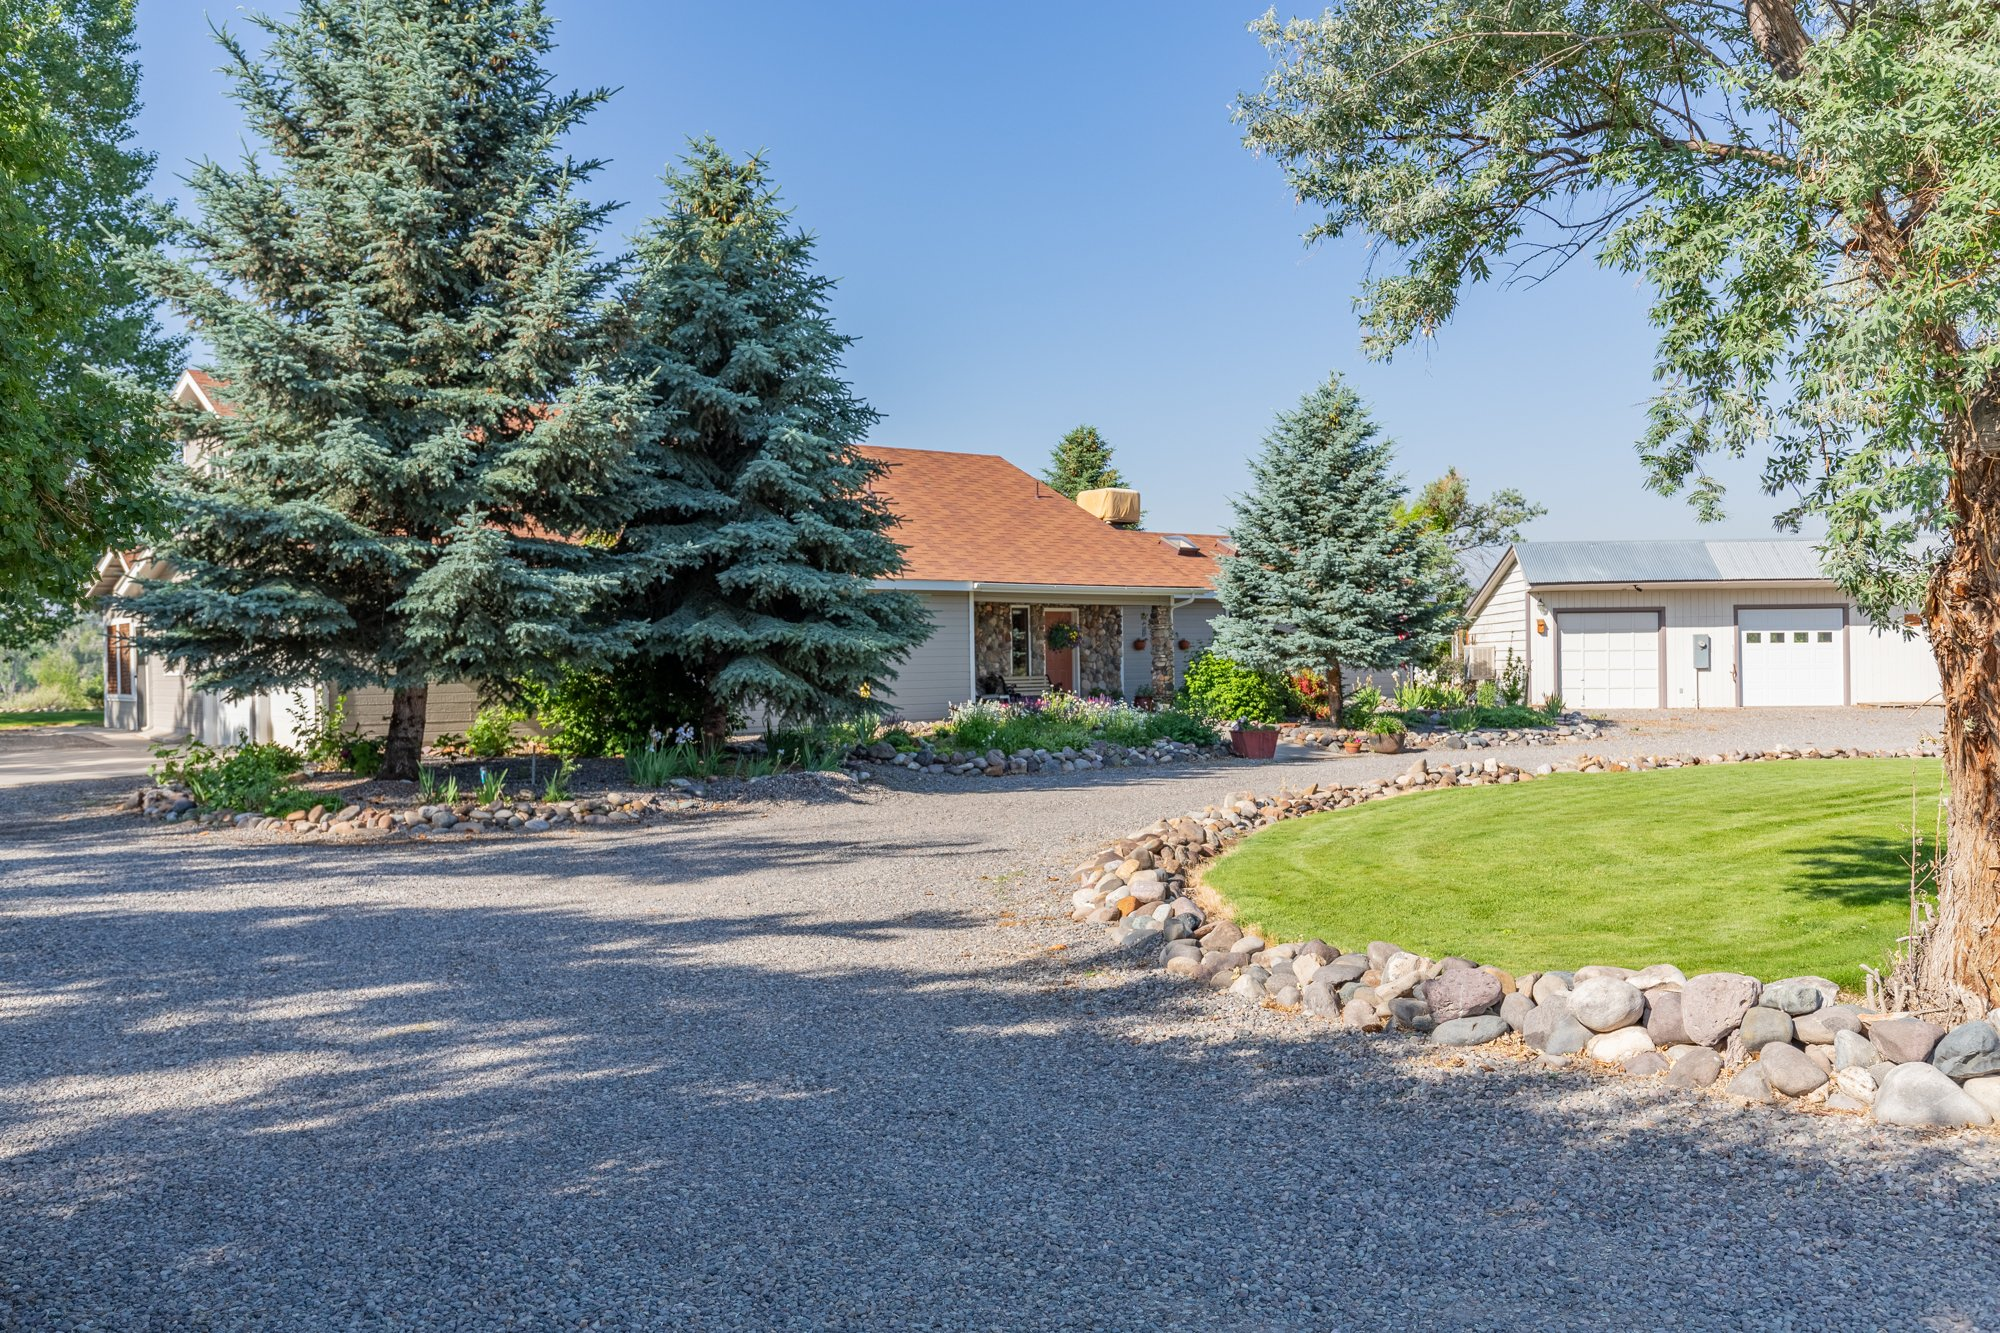 Circle Drive Entrance - 17777 6650 Rd Montrose, CO 81403 - Atha Team Country Real Estate